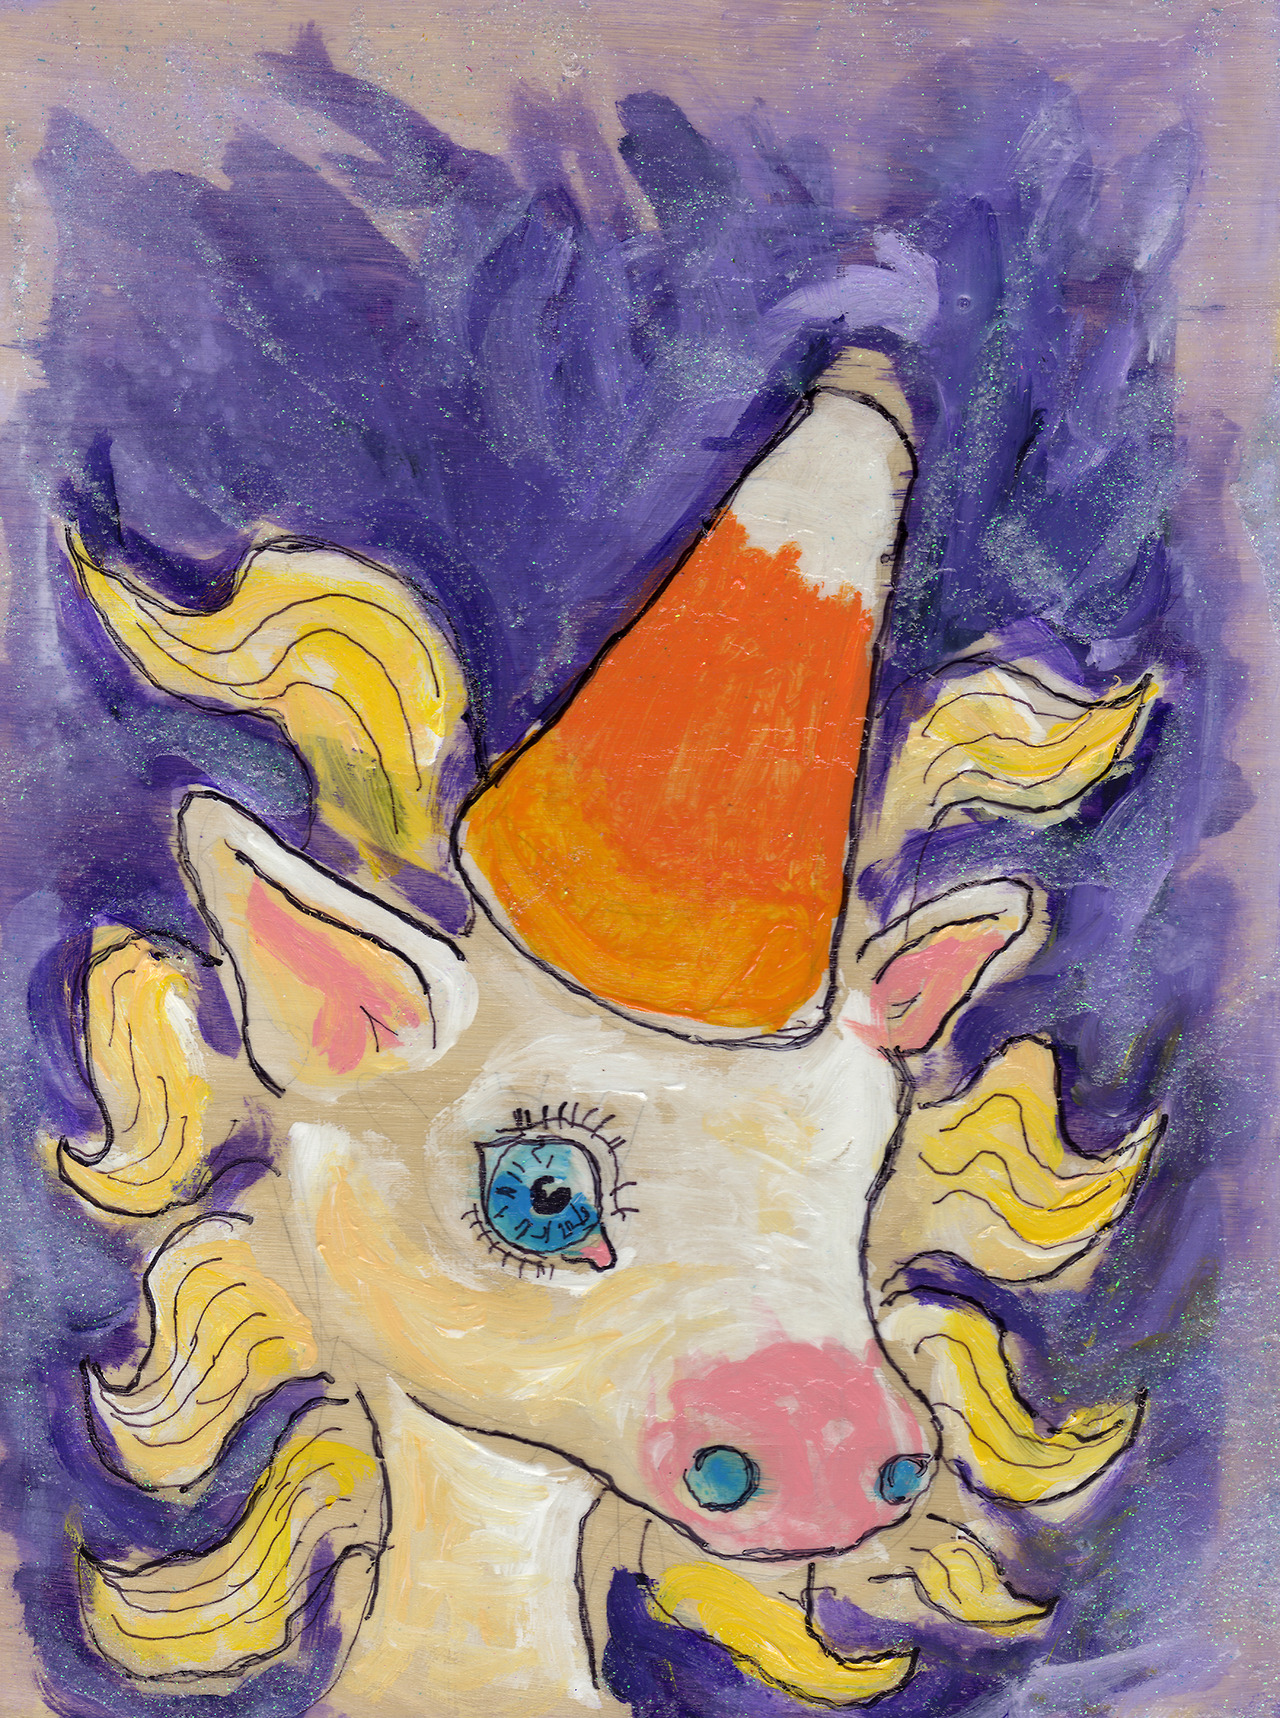 10/23/13 -  Candycorn.    I channeled my inner Lisa Frank today. This piece is glittery. And shiny.   Oh, and candy corn is gross.   Buy it here -  http://taylorwinder.bigcartel.com    Prints of it here -  http://society6.com/taylorwinder